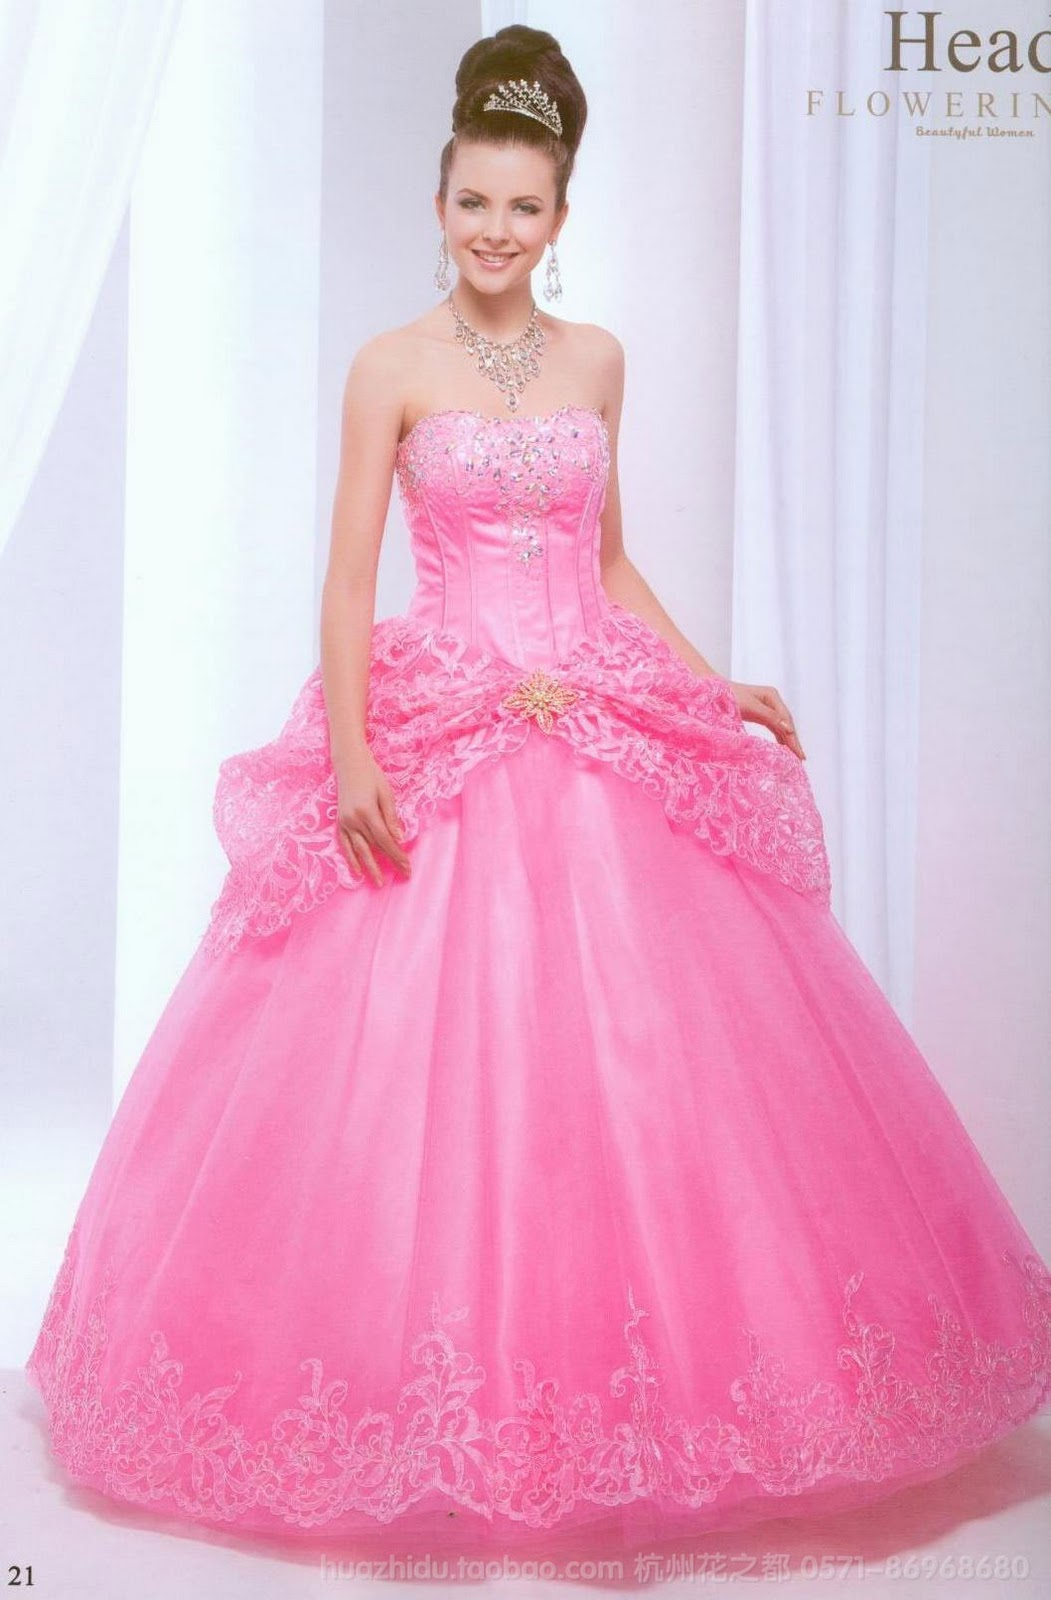 Cinderella Wedding And Evening Gowns : Cinderella wedding theme evening gown